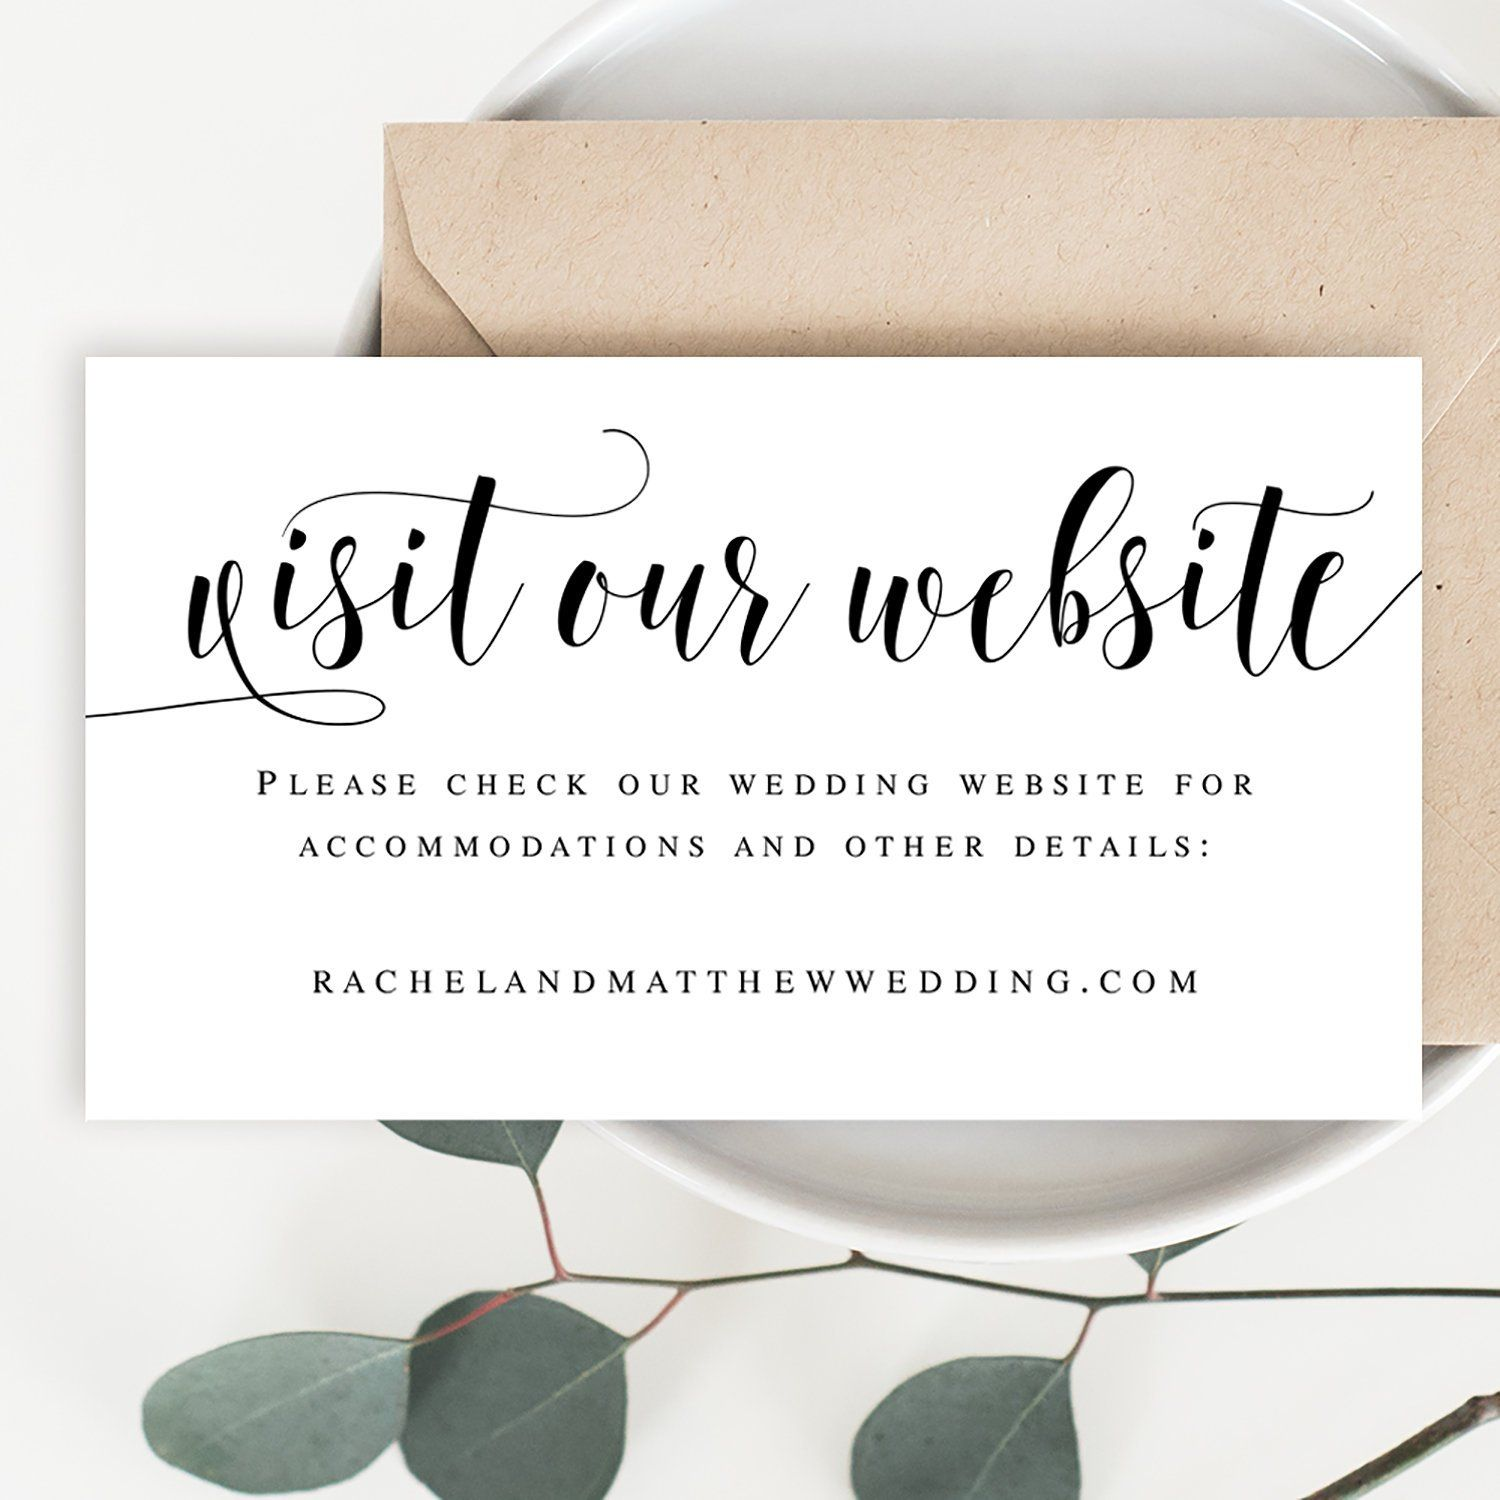 Visit Our Website Card Template Invitation Insert Template Rustic Website Insert Invitation Insert Cards Wedding Website Card Wedding Website Wedding Templates